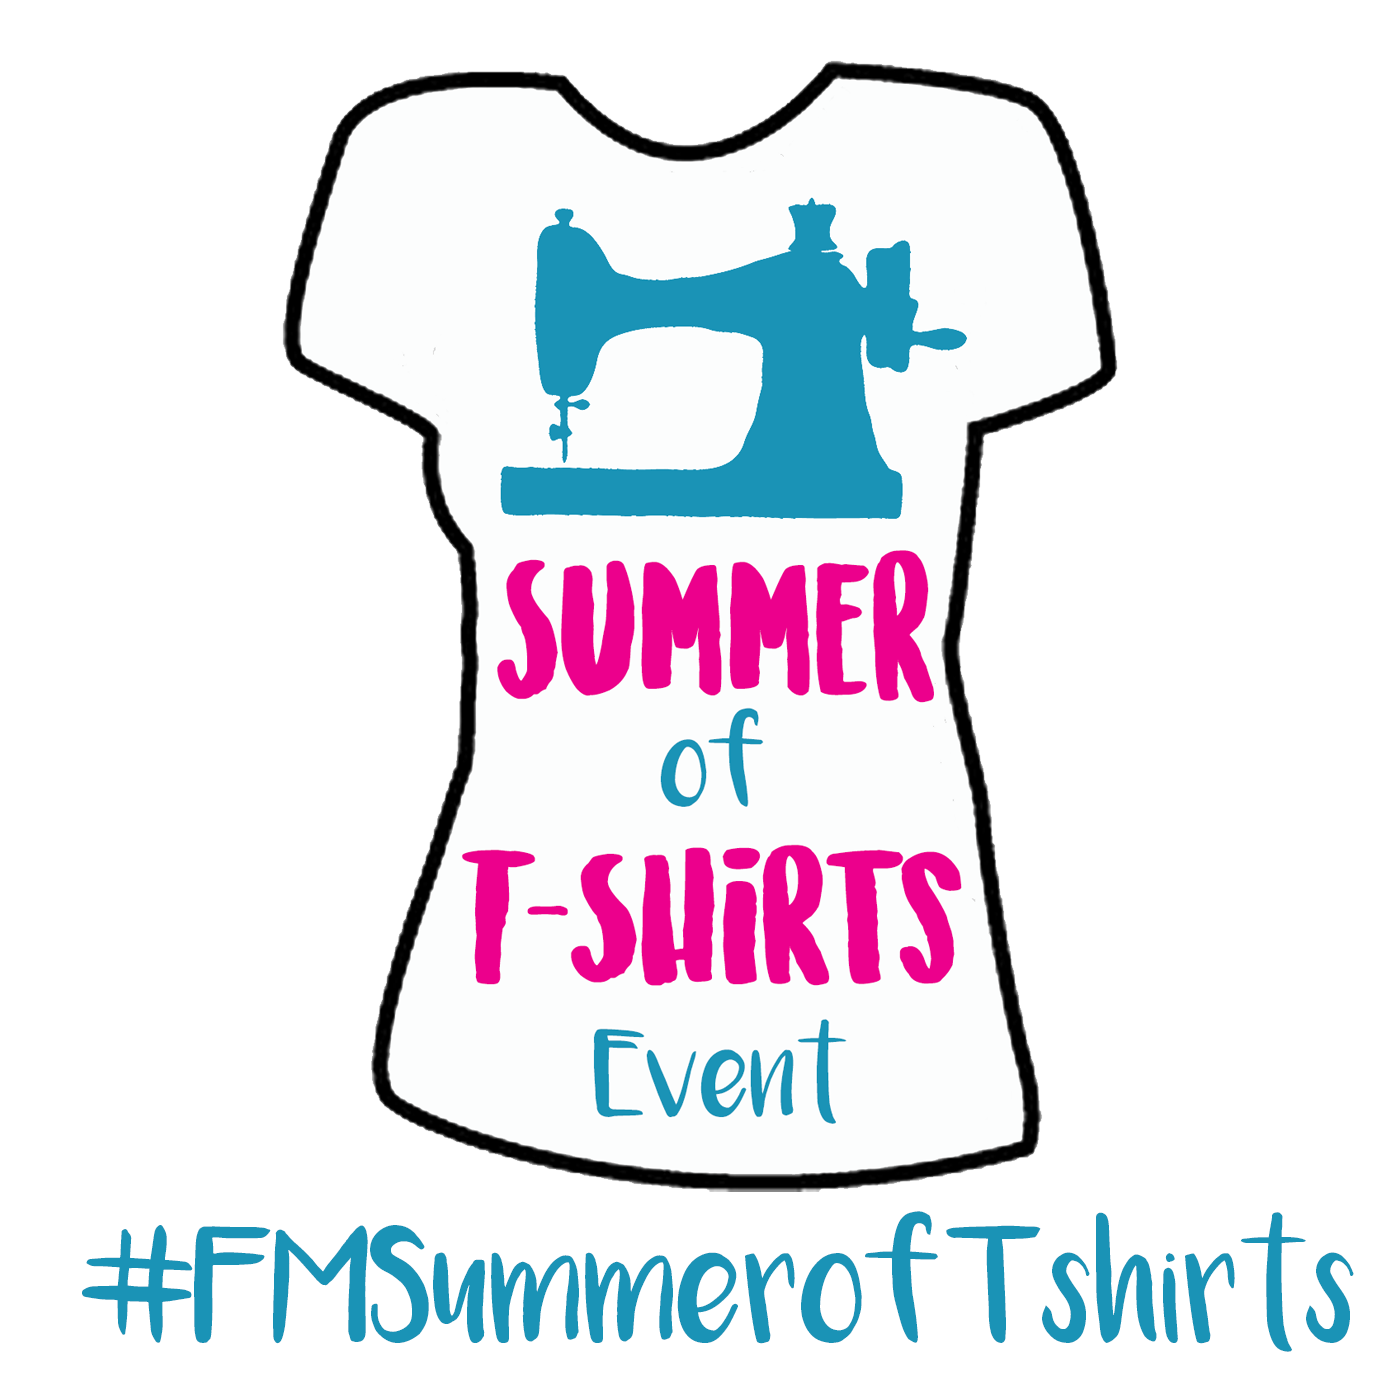 Summer of T-Shirts Event